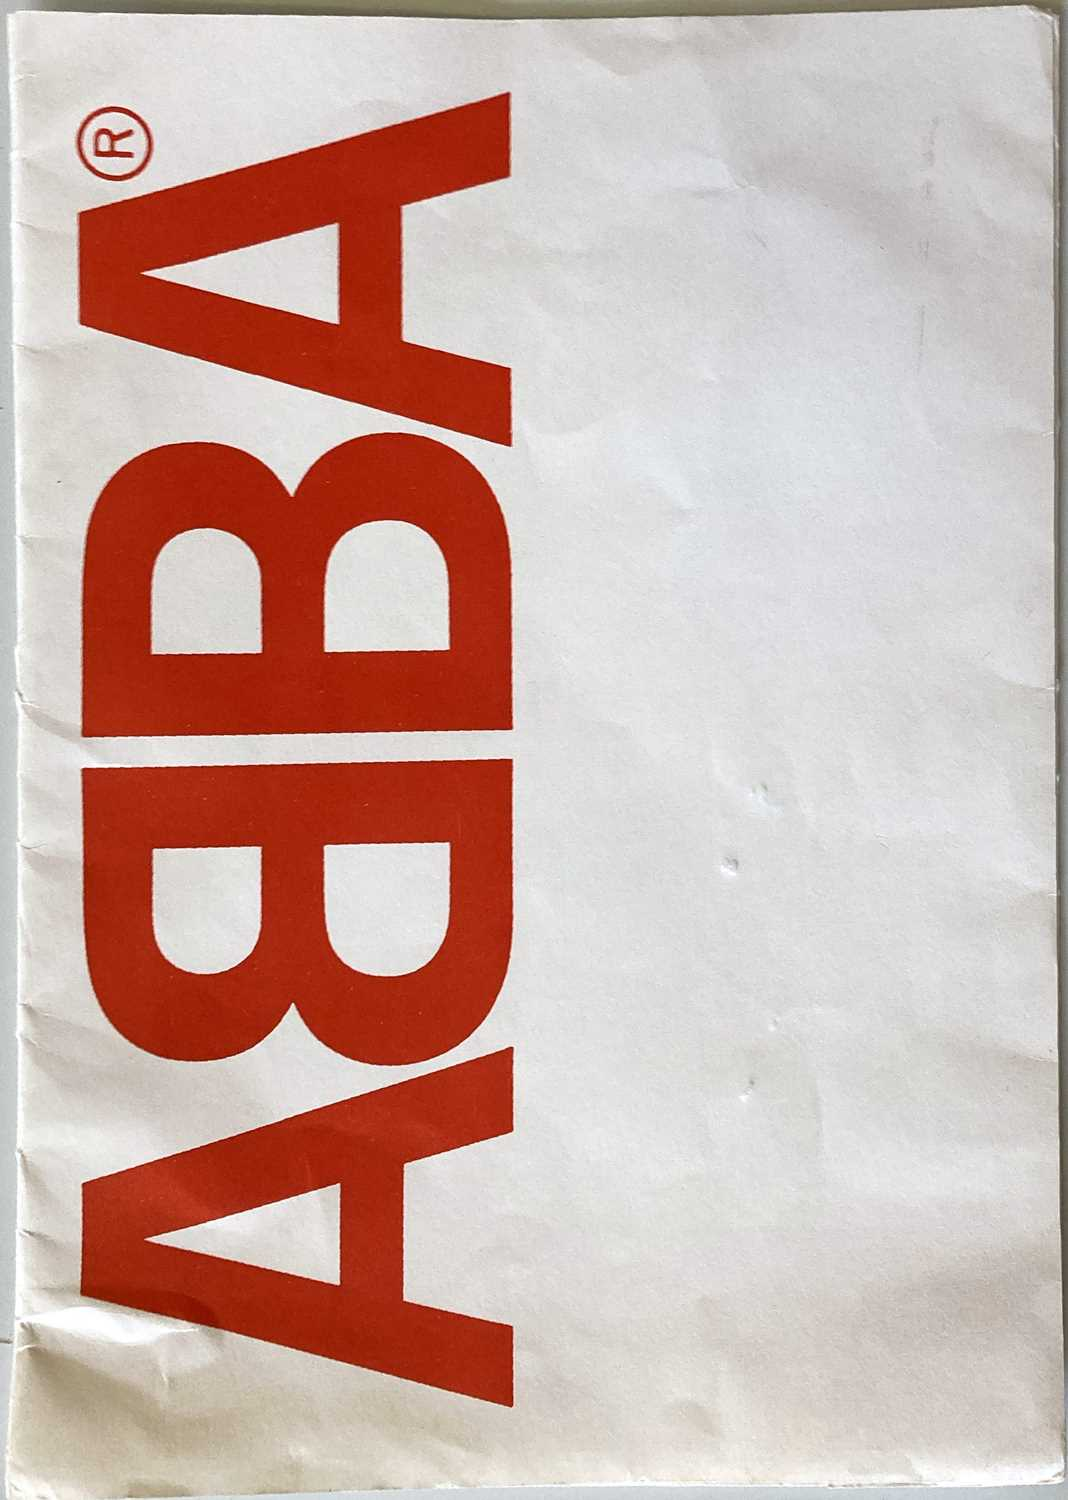 ABBA FAN CLUB PACK. - Image 2 of 3